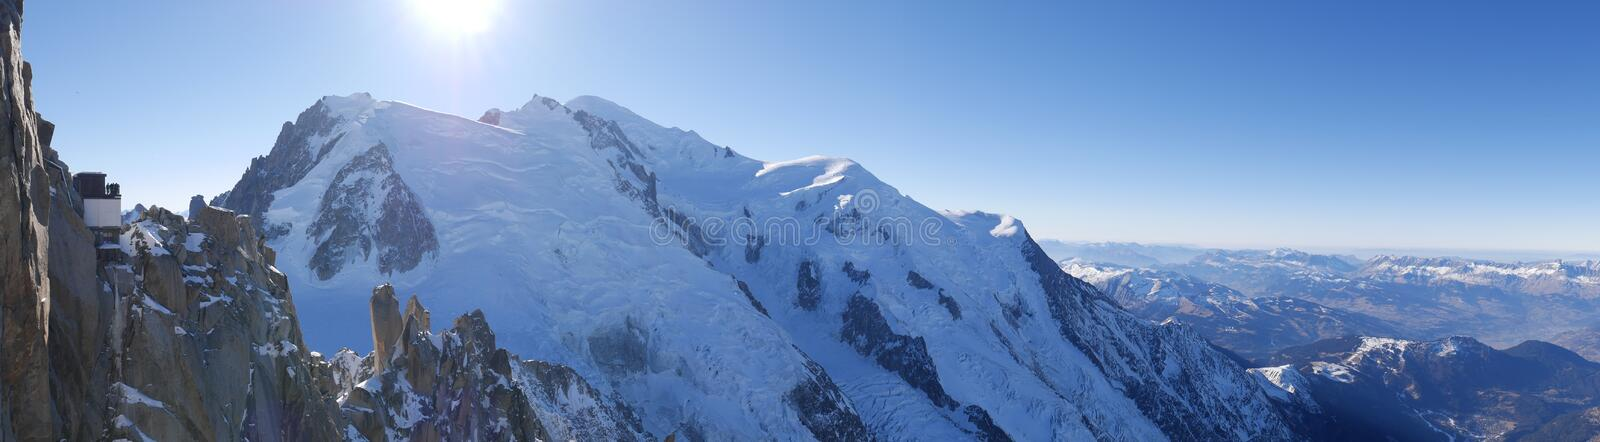 Mont blanc cosmique arete. Mont blanc and cosmique arete. Panoramic royalty free stock photos